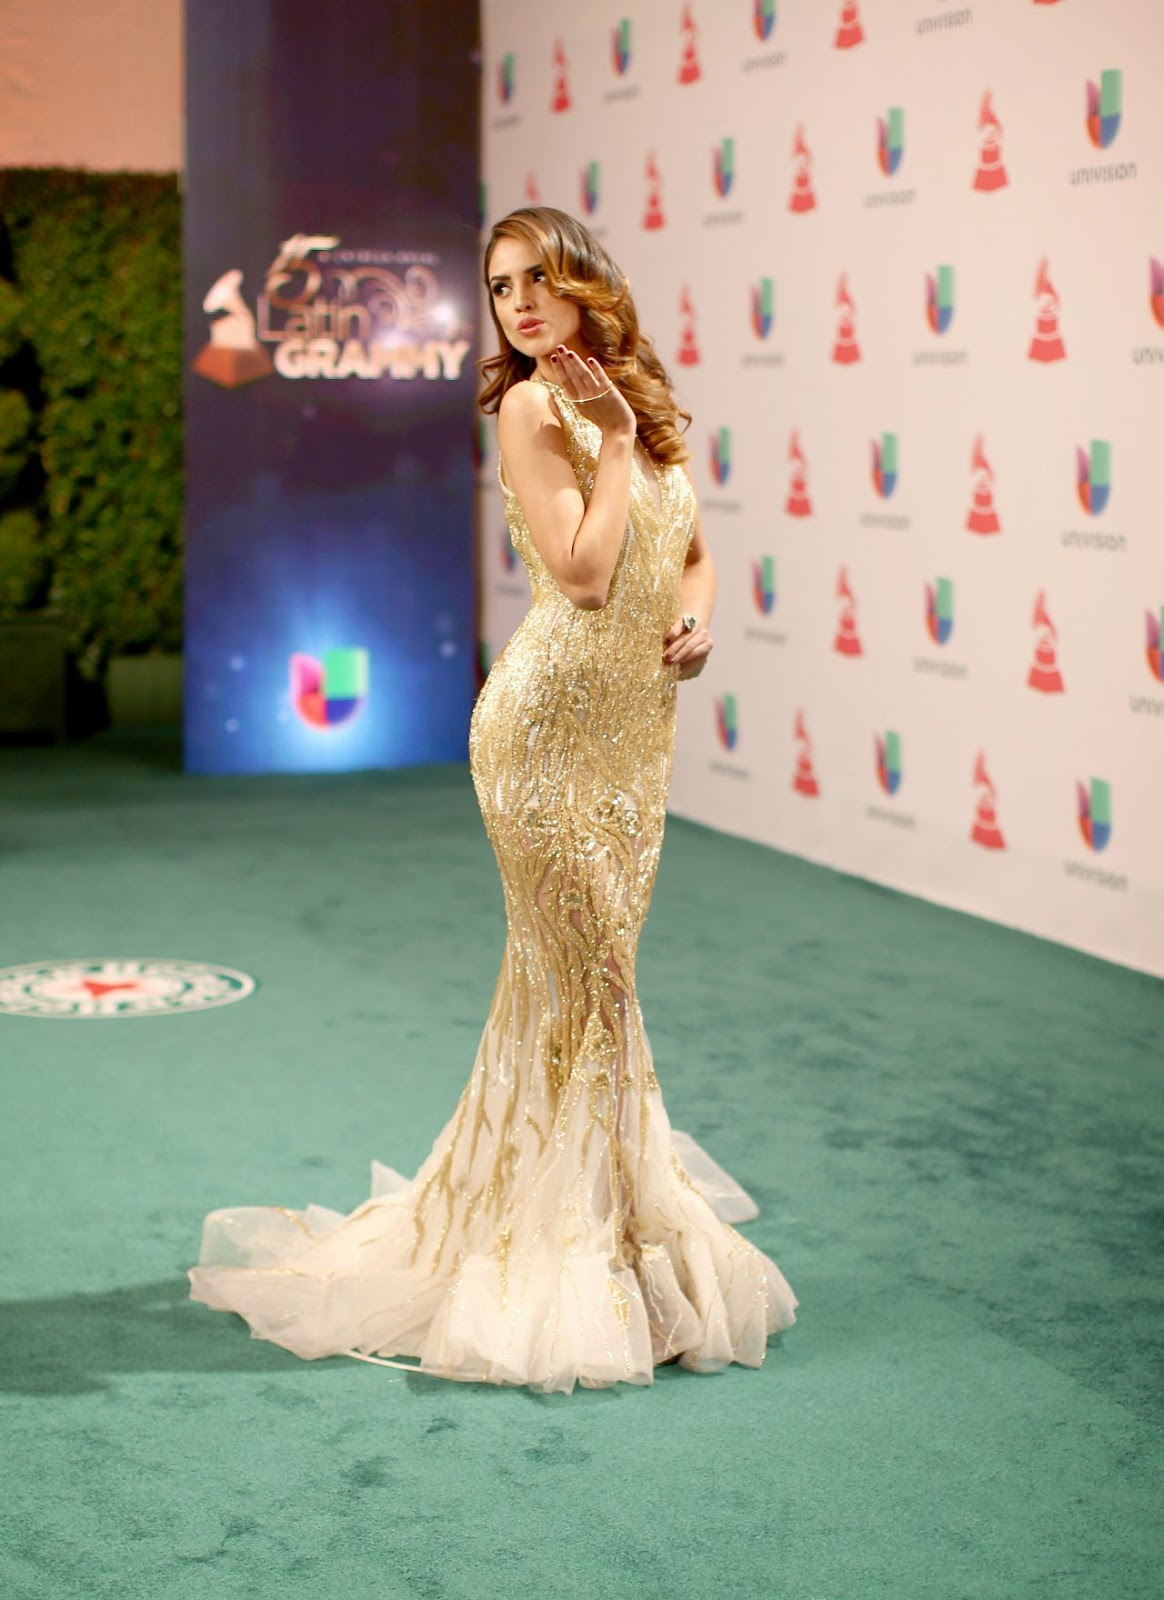 Eiza Gonzalez shows off curves at the 2014 Latin Grammy Awards in Las Vegas